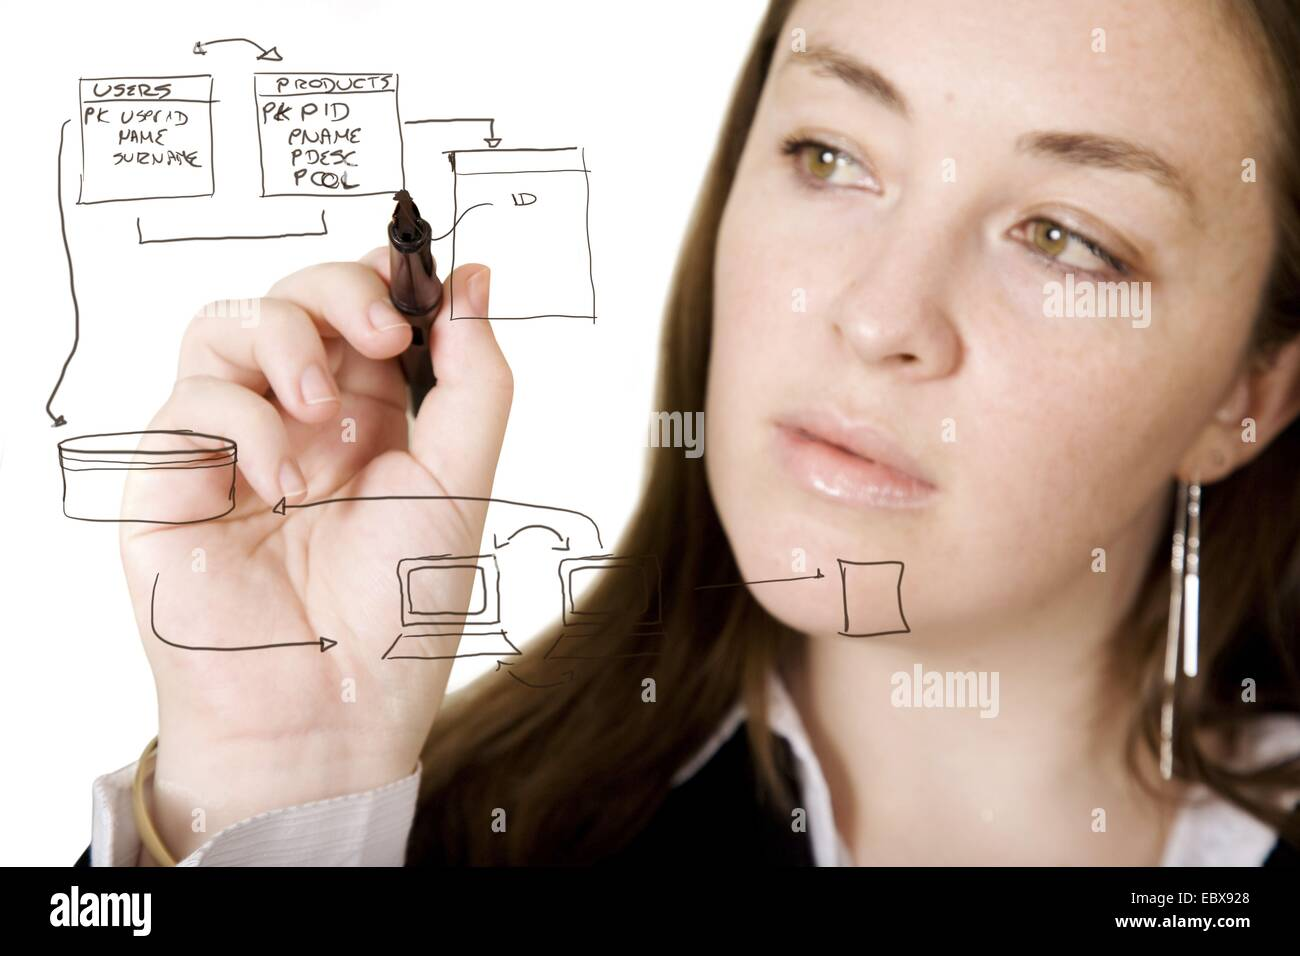 young woman drawing a workflow diagramm on a glass pane in front of her with a pen - Stock Image